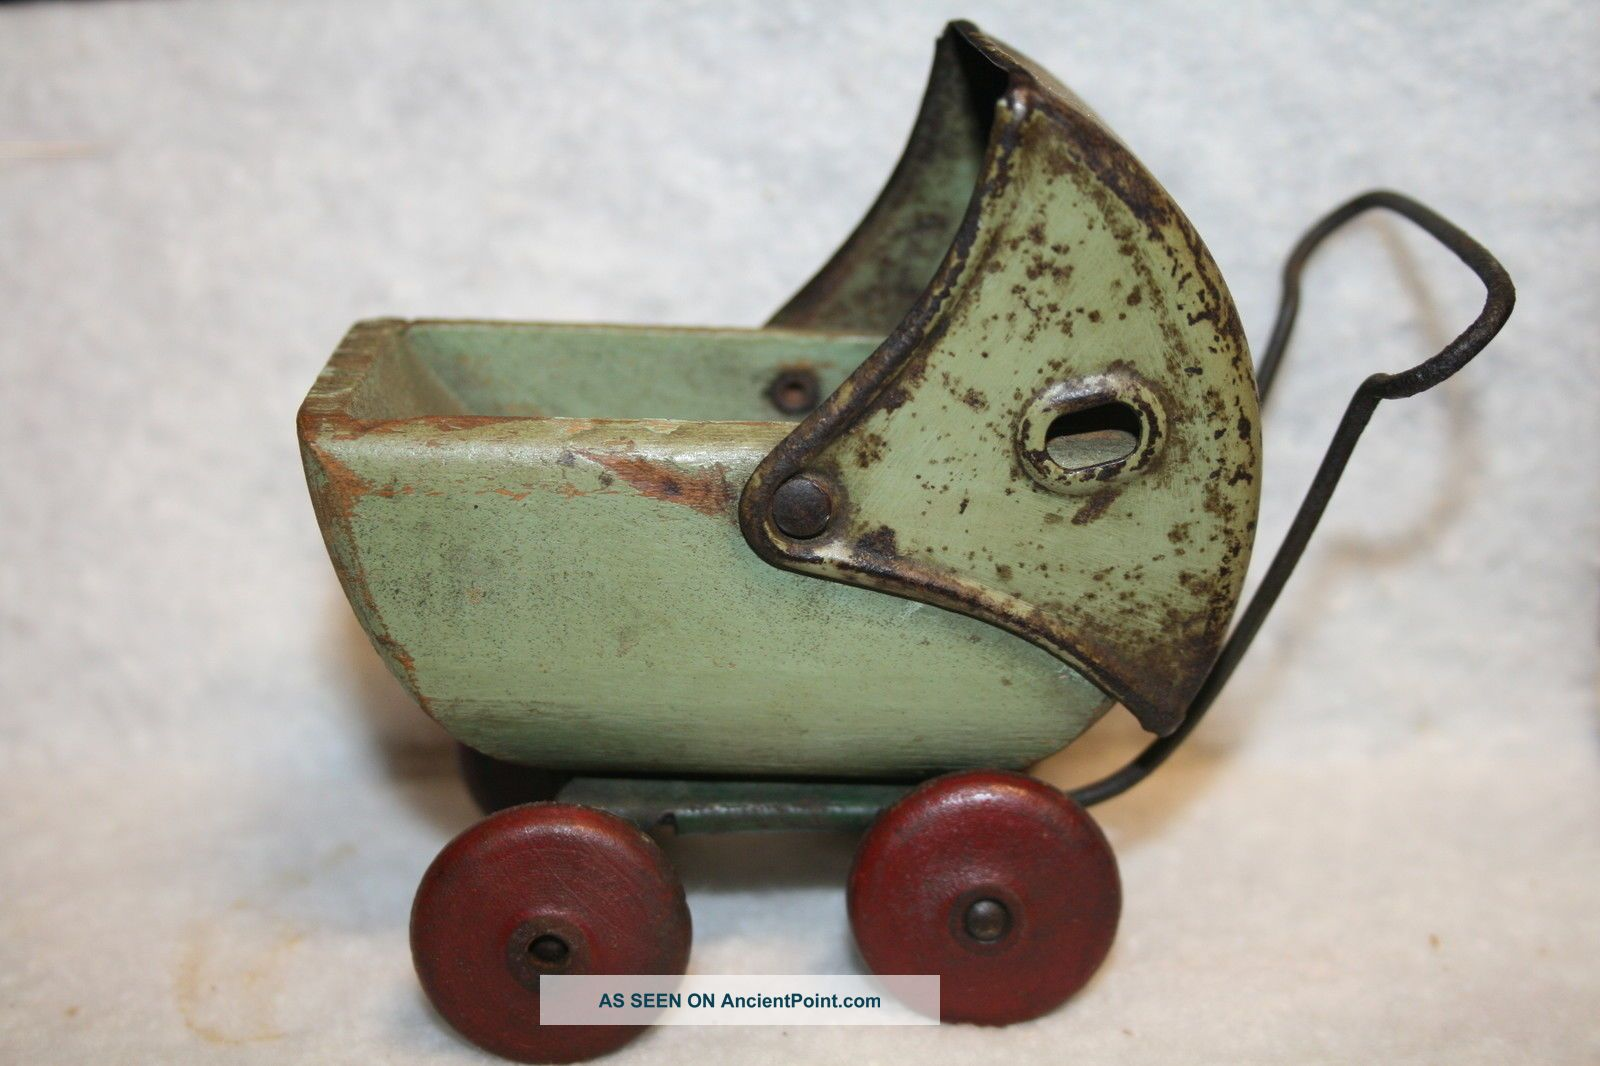 Vintage Green Wood Metal Toy Baby Doll Stroller Carriage Buggy Baby Carriages & Buggies photo